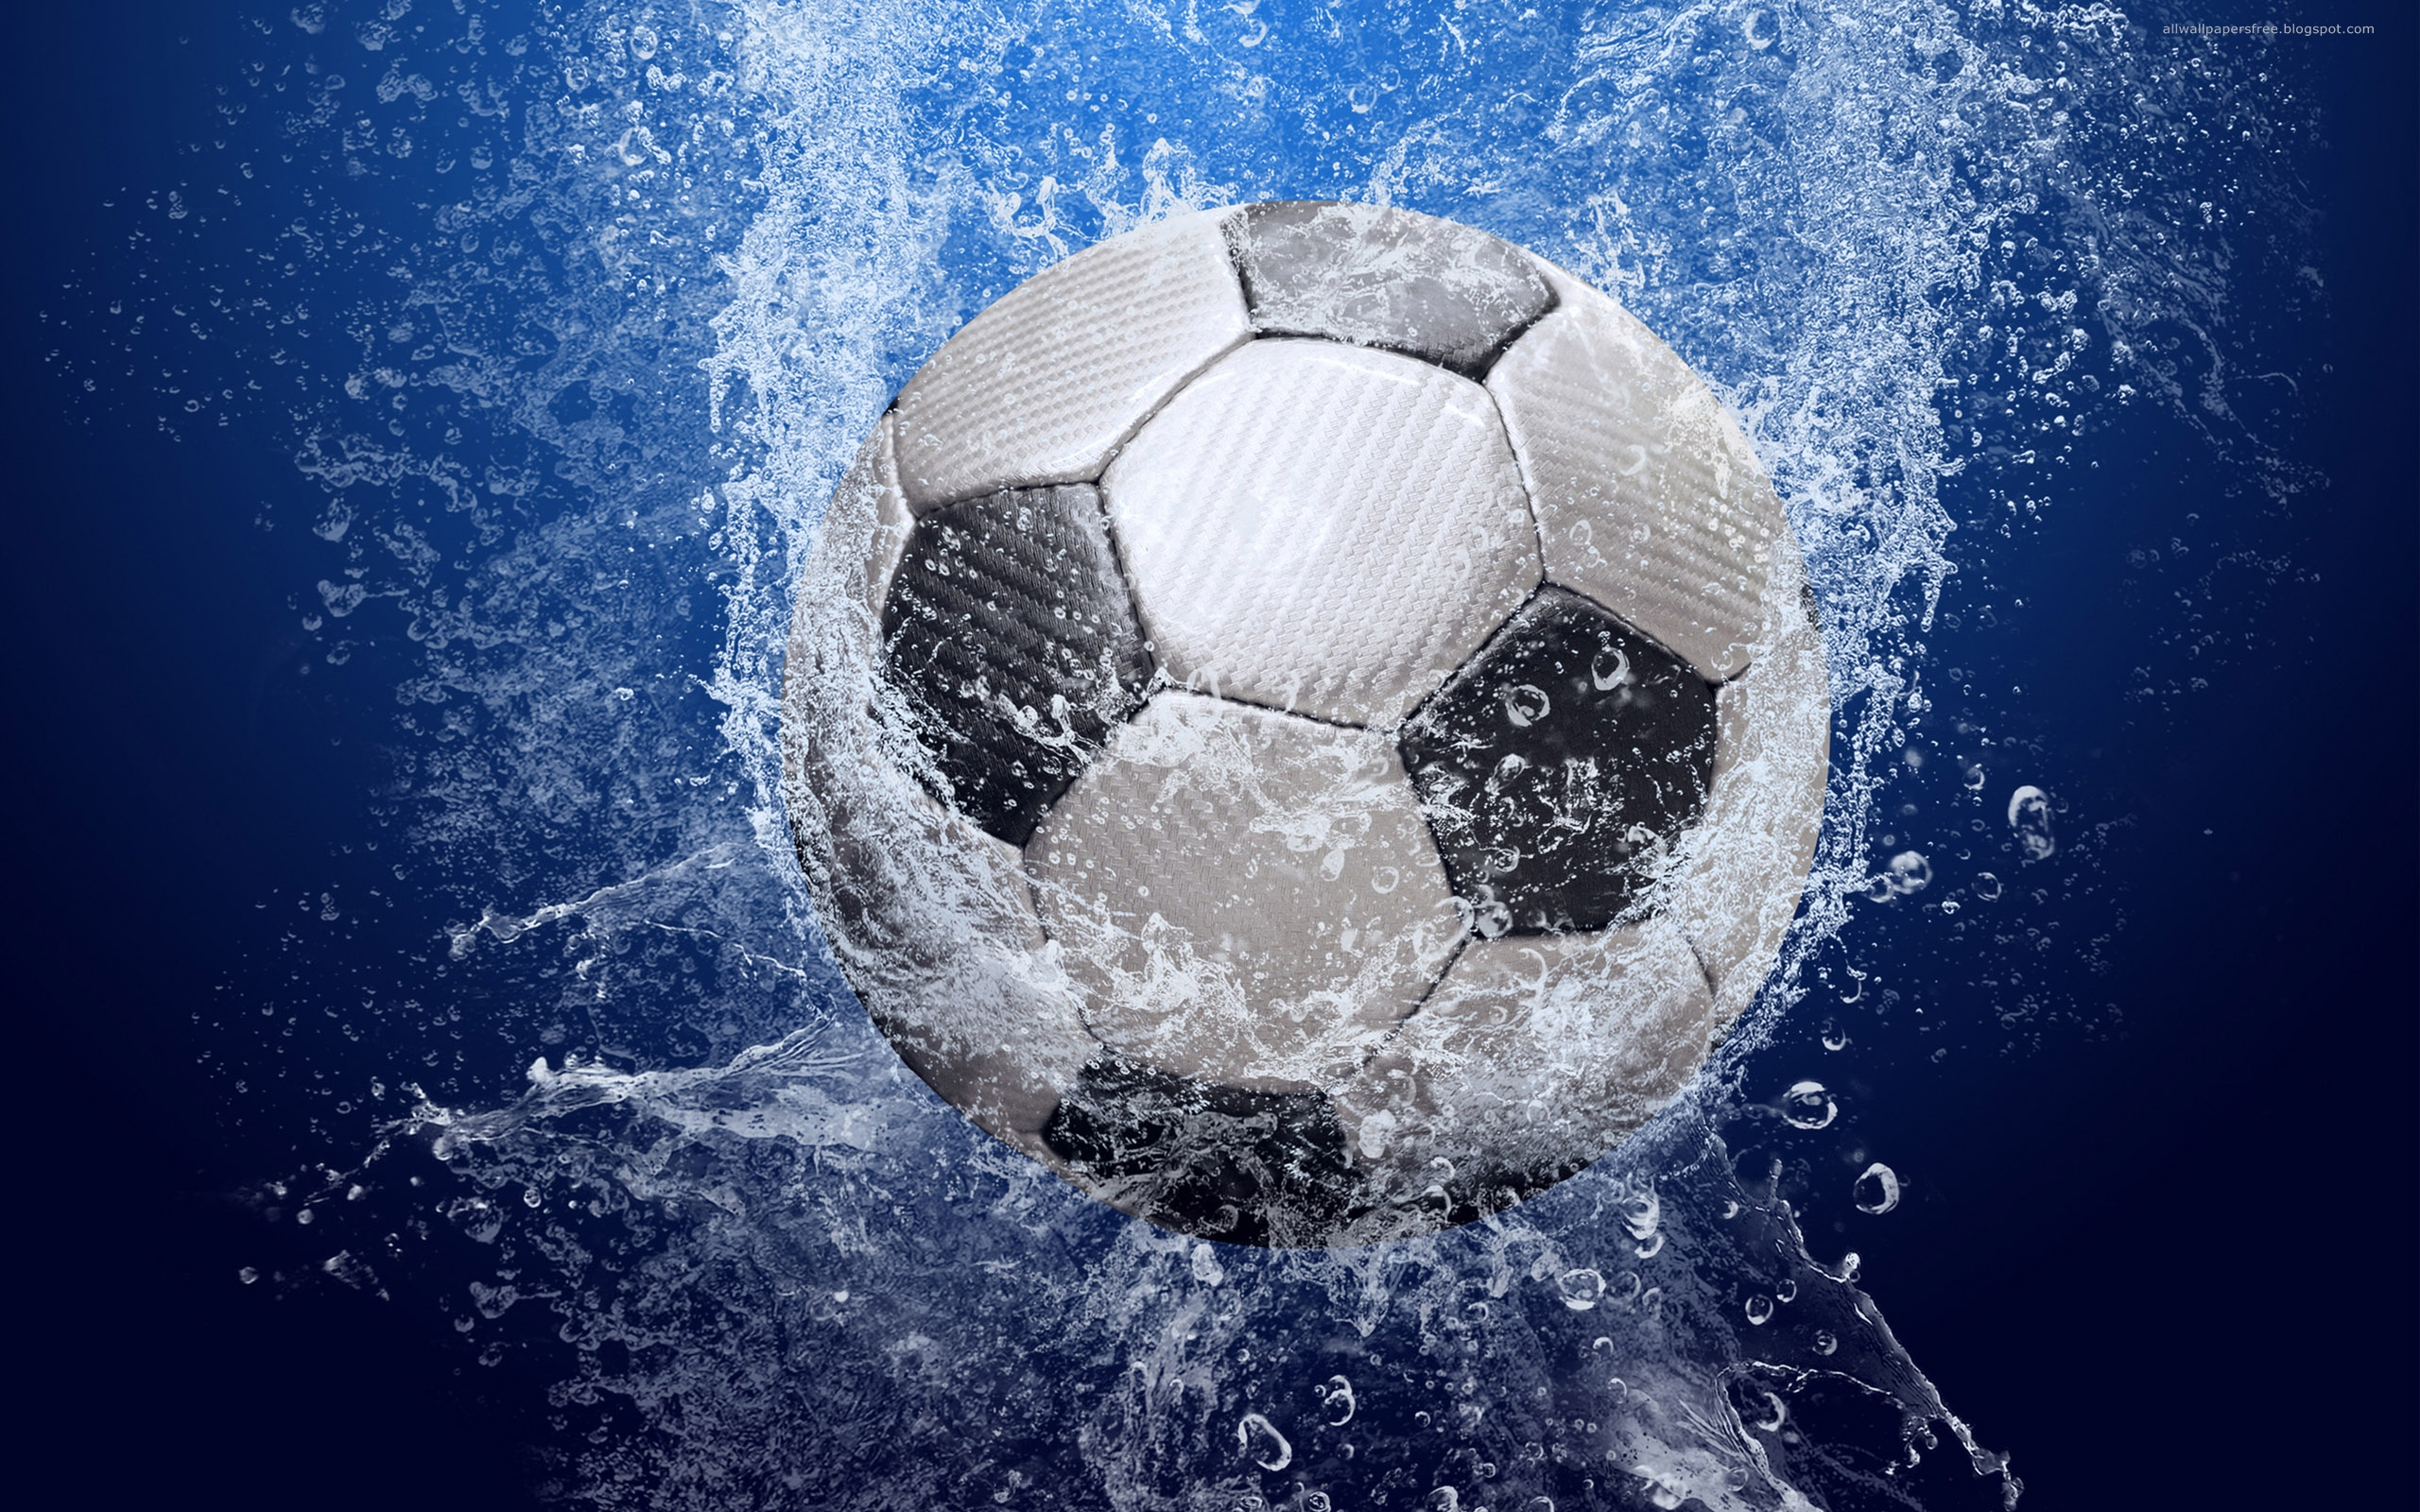 3d Football Stadium Wallpaper Ball In The Water Wallpapers Ball In The Water Stock Photos